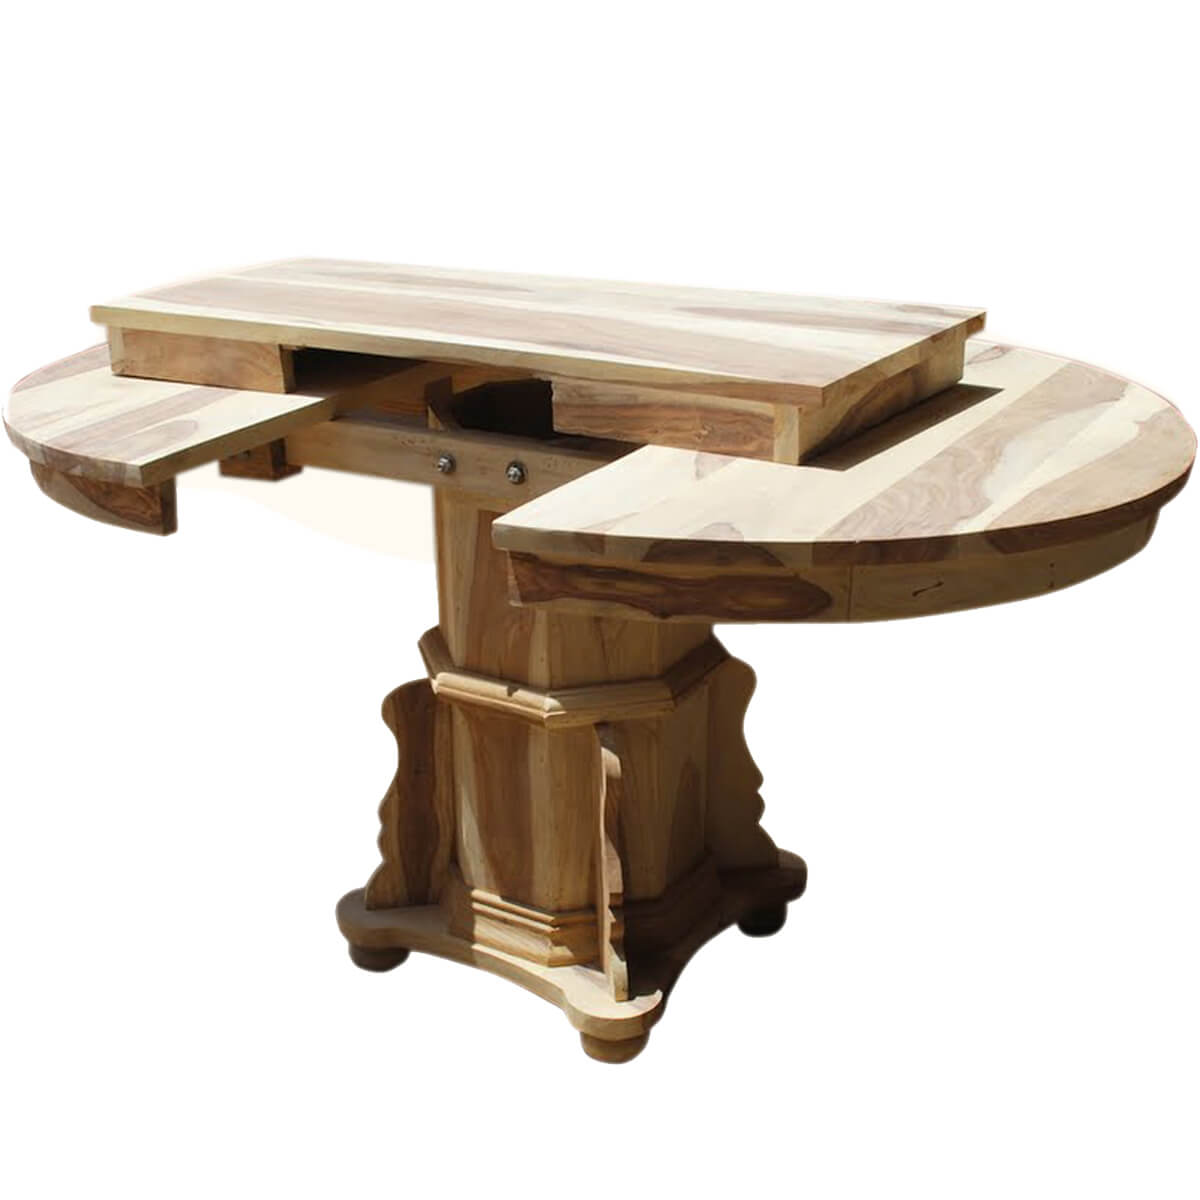 Wood Round Dining Table: Dallas Ranch Solid Wood Pedestal Round Dining Table W